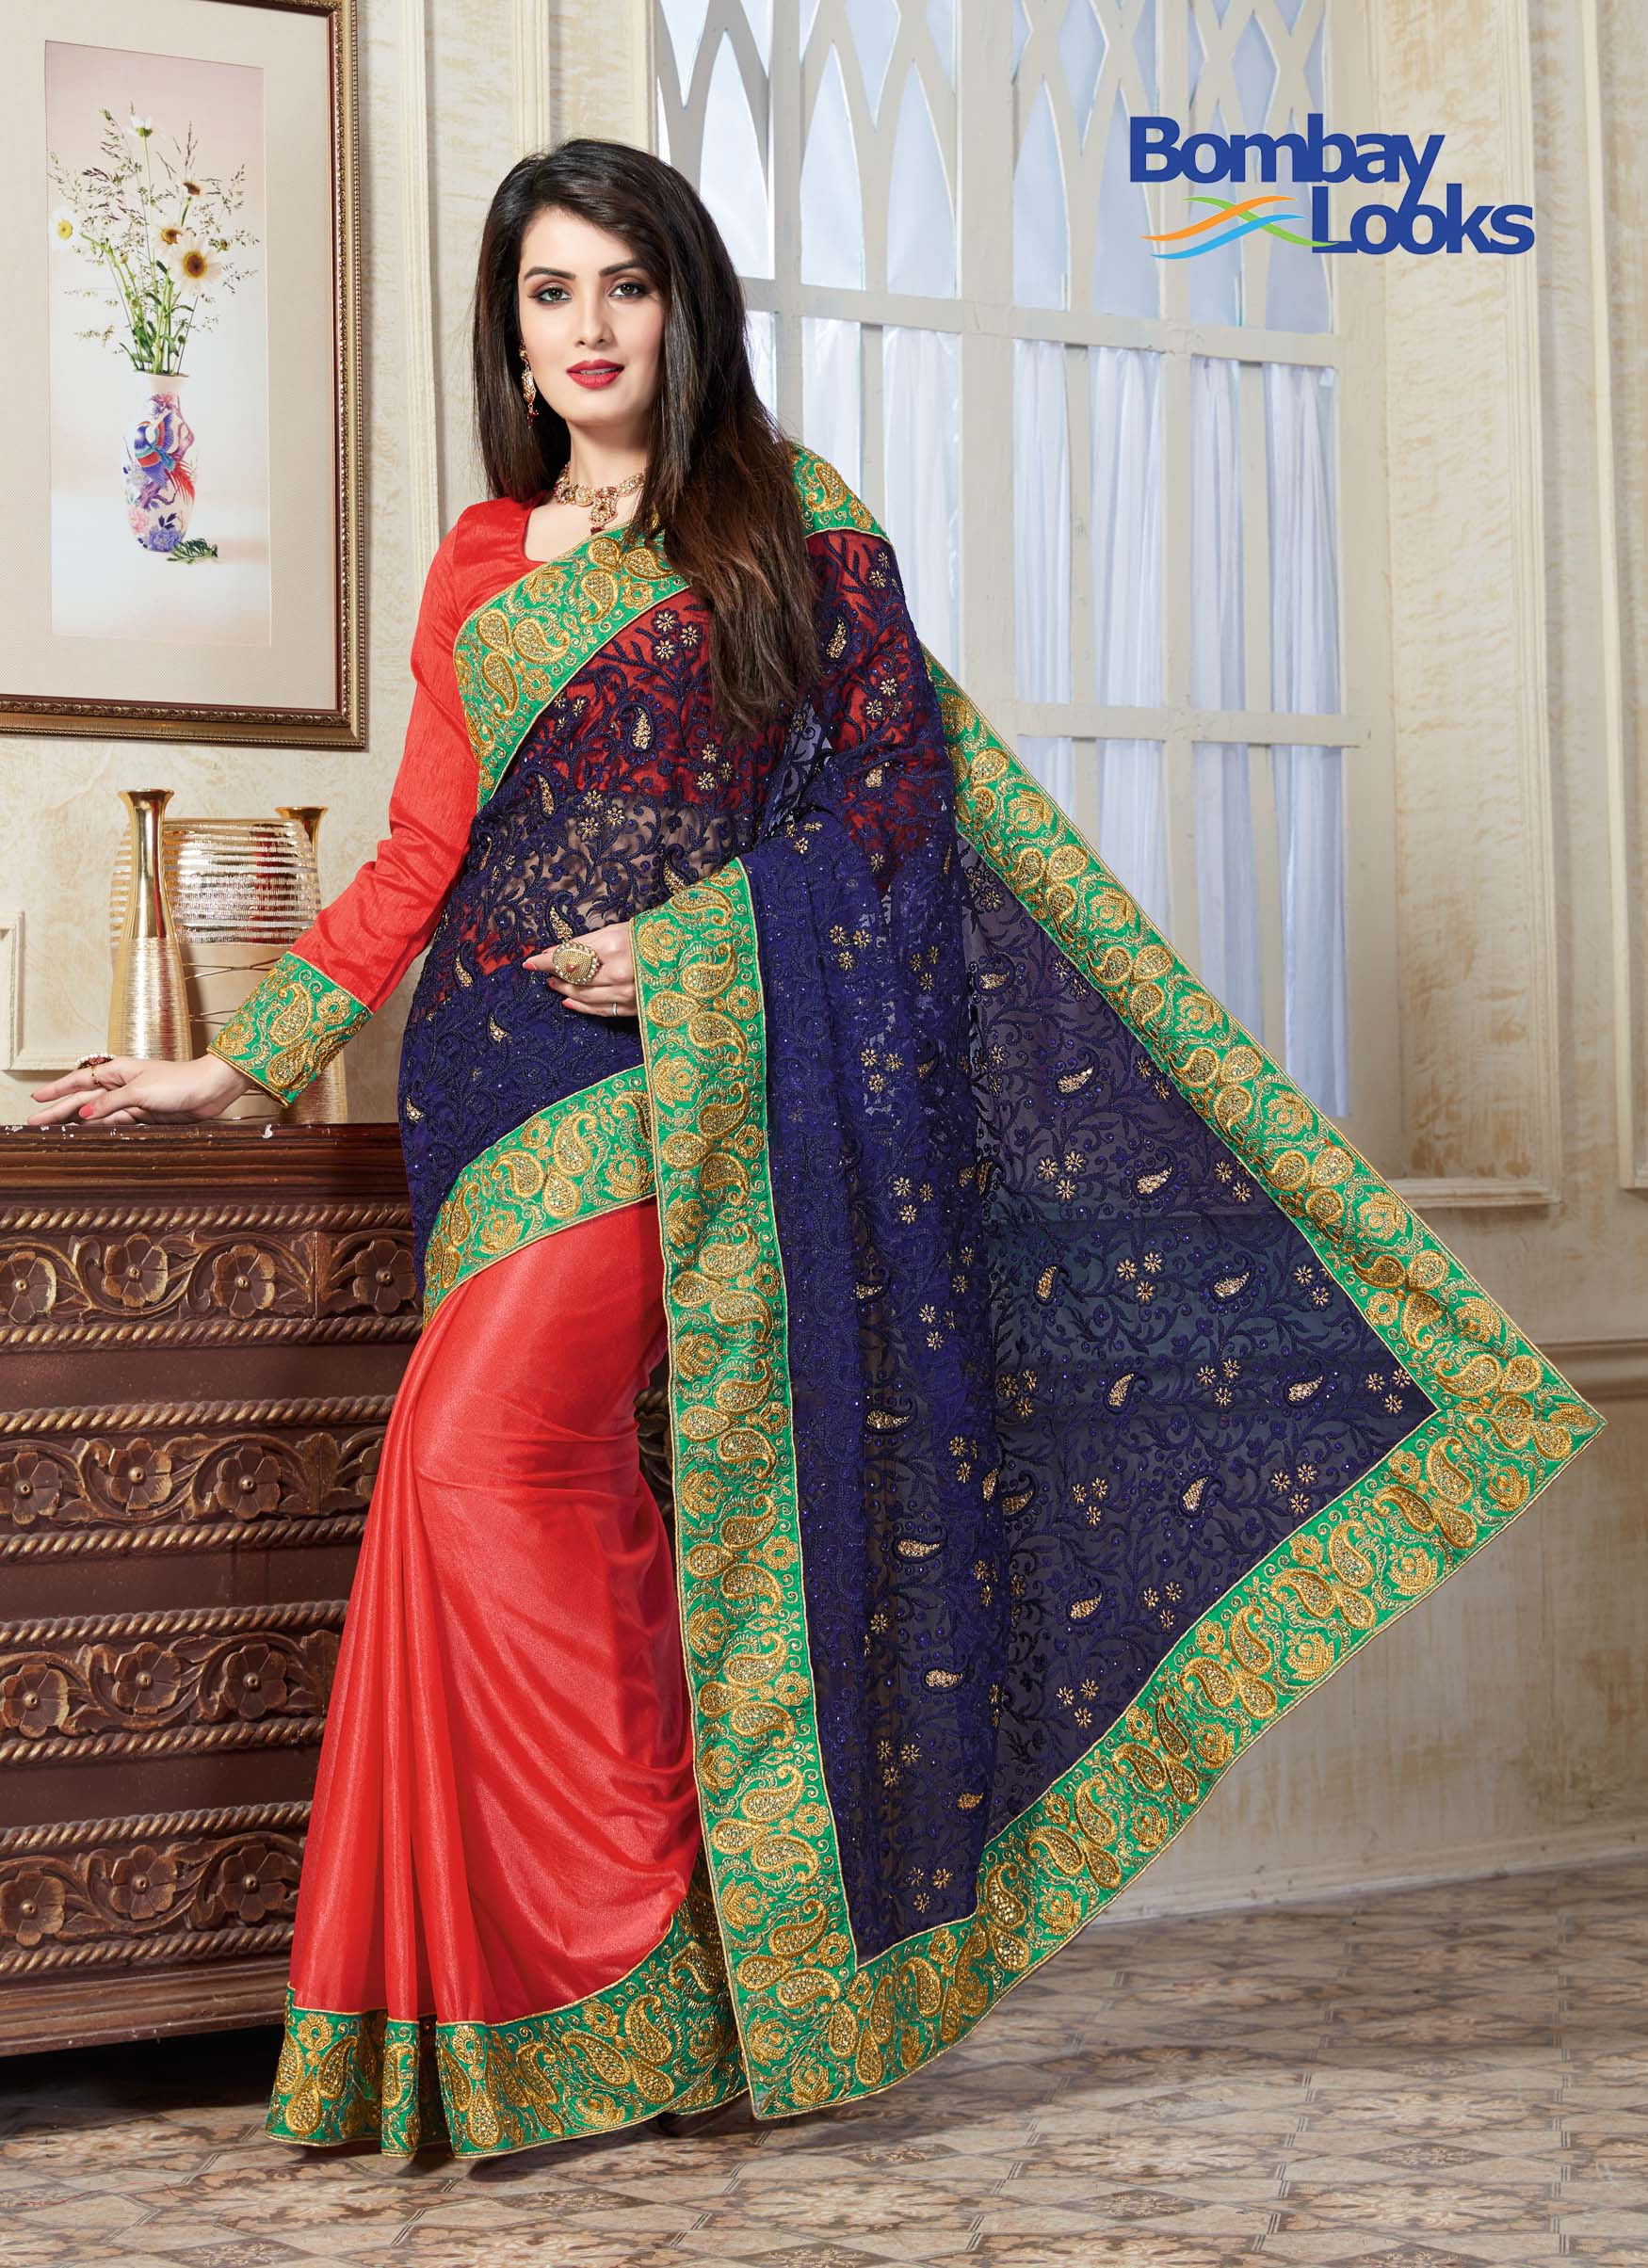 Gorgeous navy blue, green and coral saree with rich embroidery and stone cut work